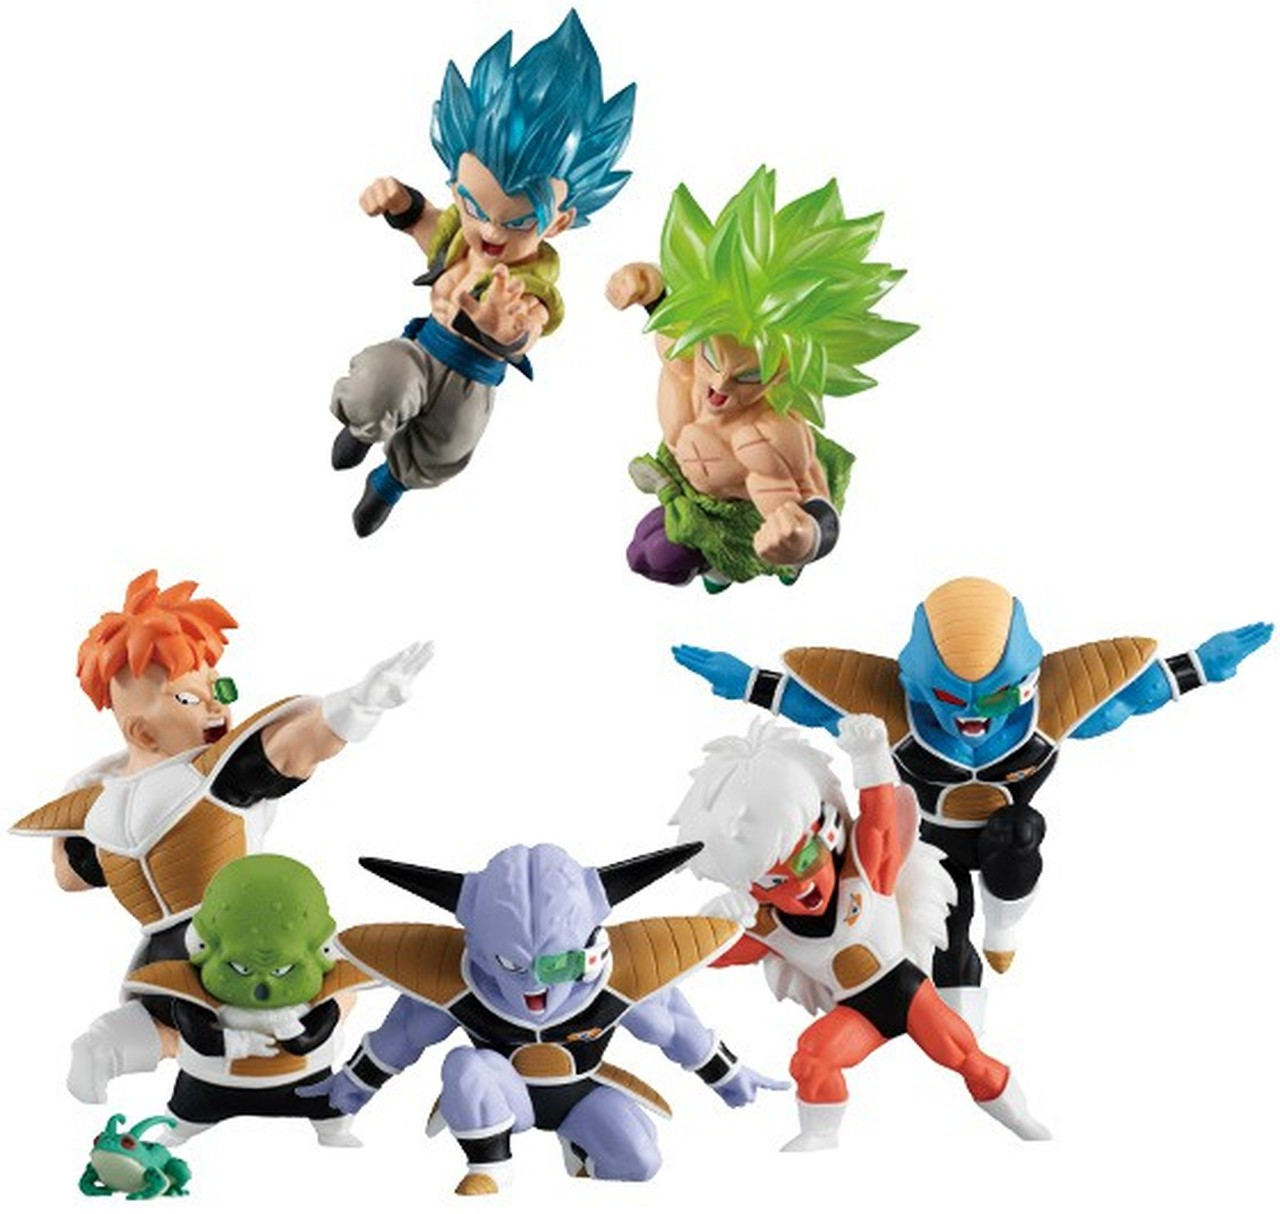 Dragon Ball Super Adverge Motion Figures: Vol. 2: Super Saiyan Blue Gogeta